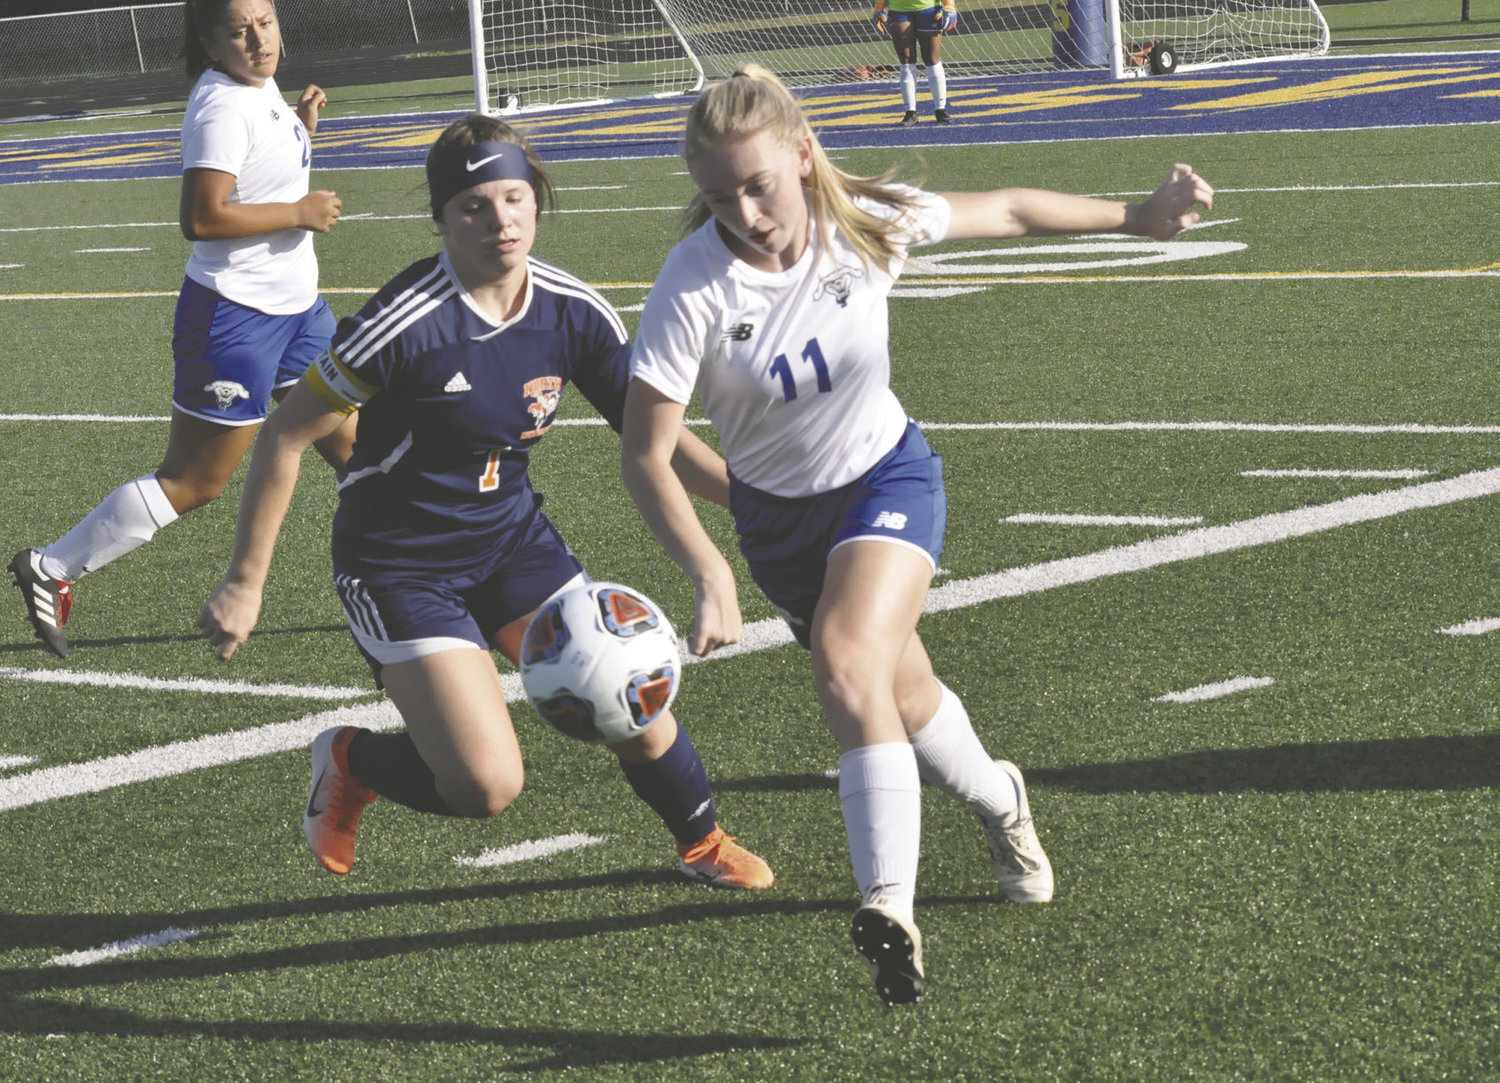 North Montgomery's Sidney Campbell battles with Frankfort' Peyton Myers. Campbell scored the Charger's first goal in a 3-1 win over the Hot Dogs.